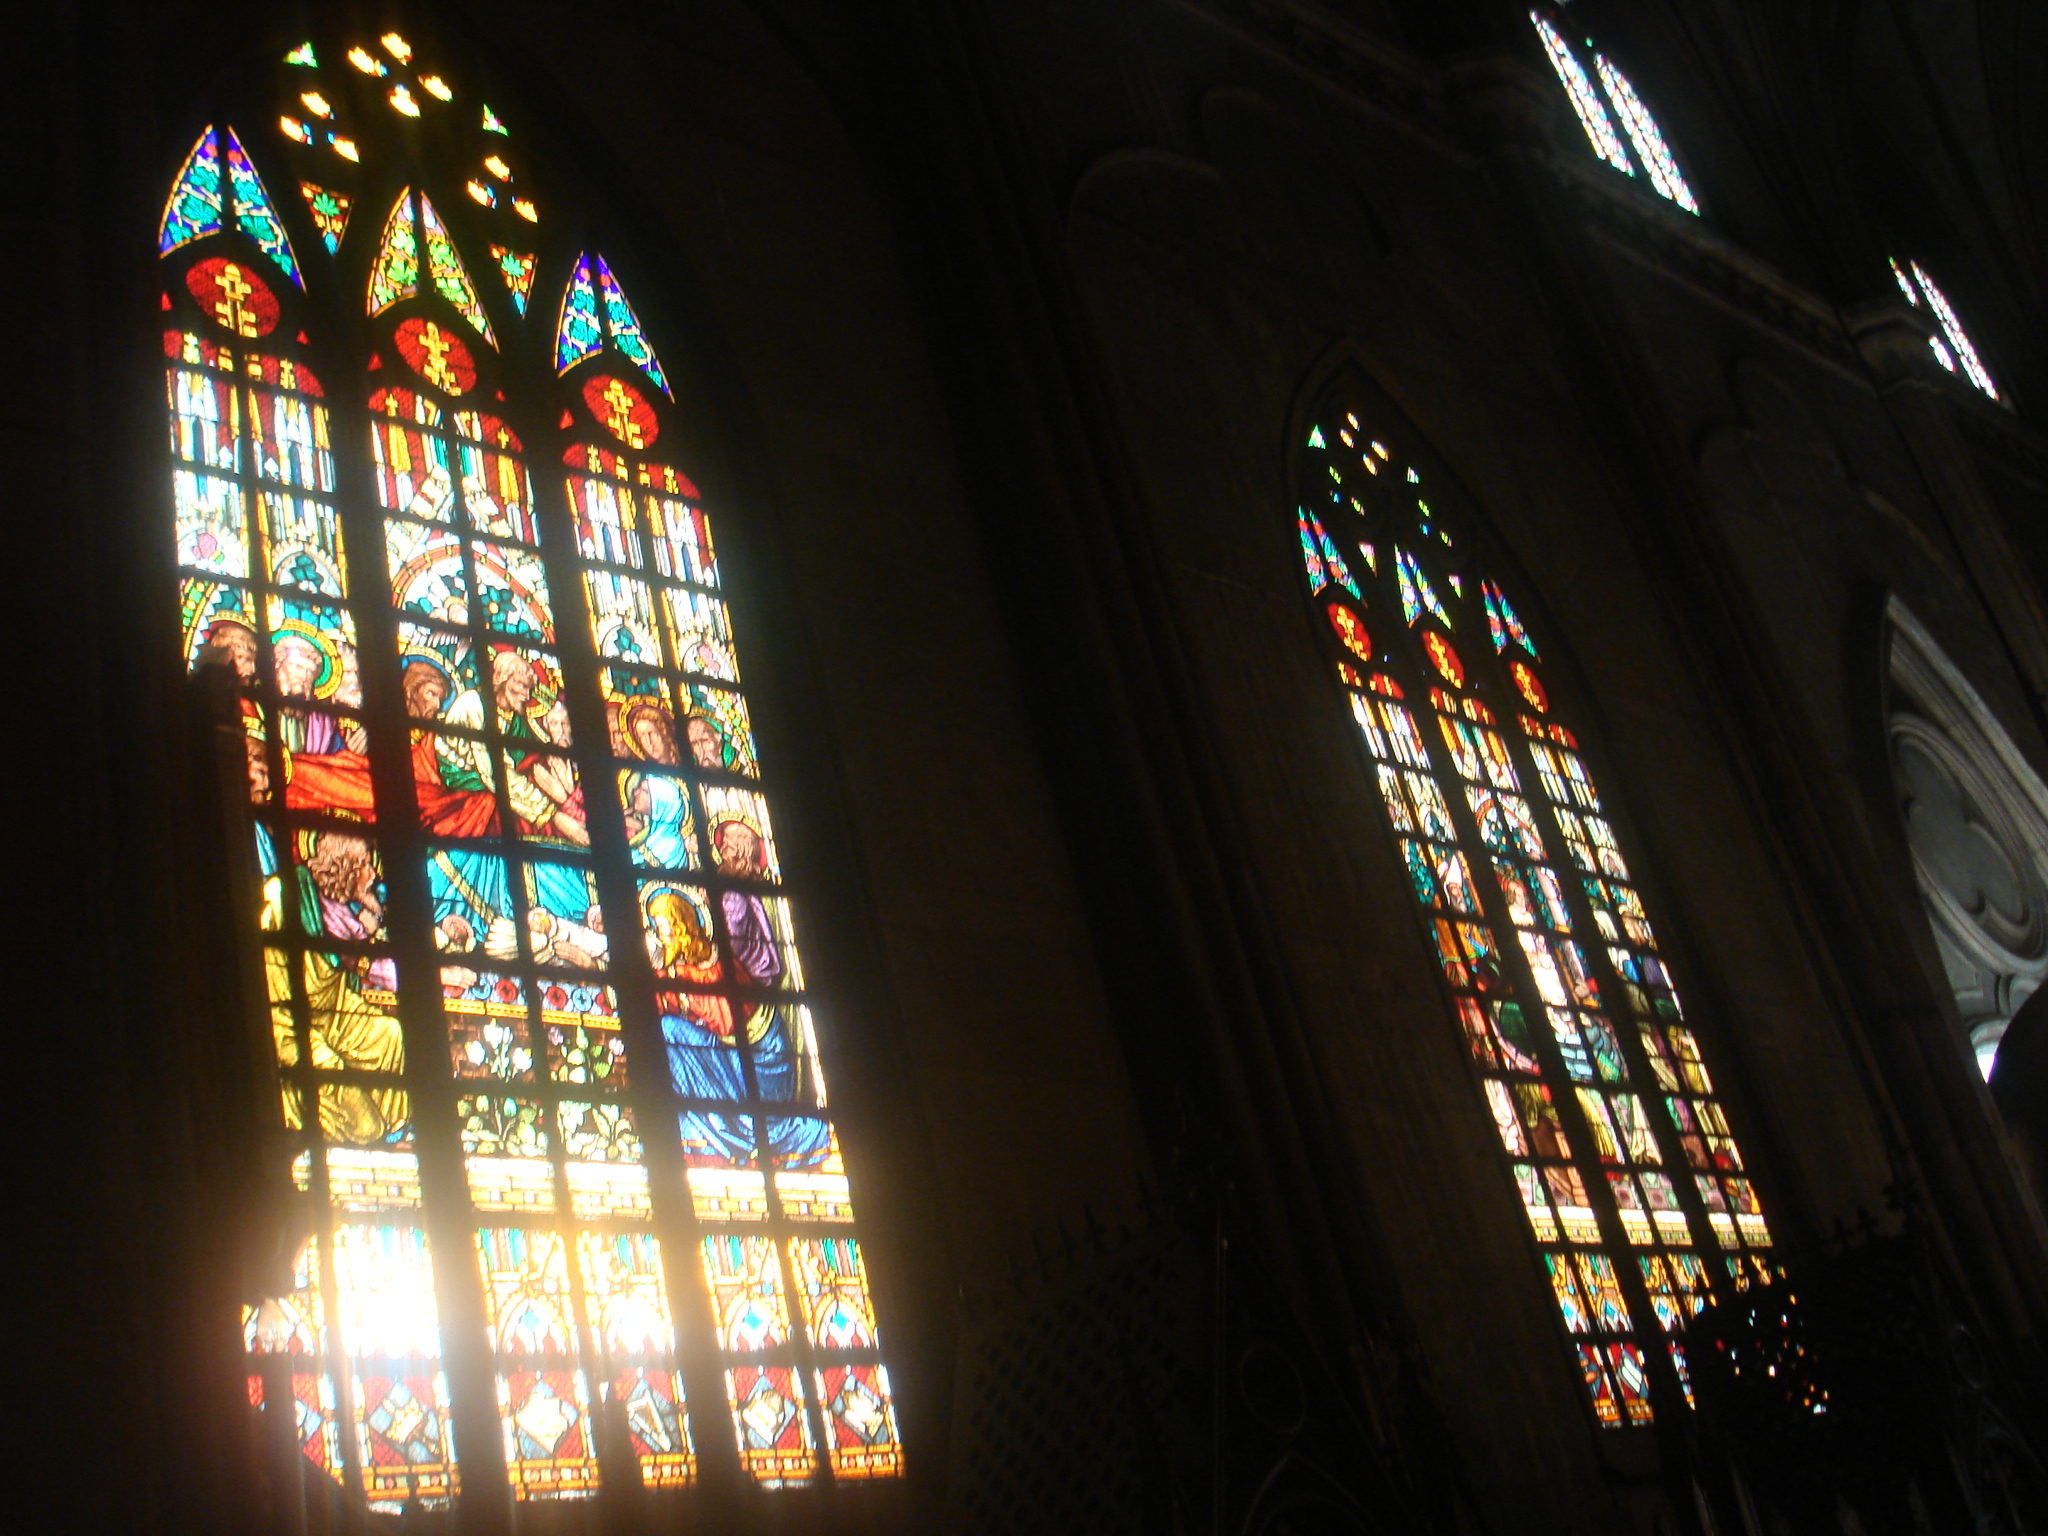 bible stories of stained glass windows essay You can now sit in the sanctuary at immanuel lutheran church in princeton and take in many stories of the bible by looking at windows around you.